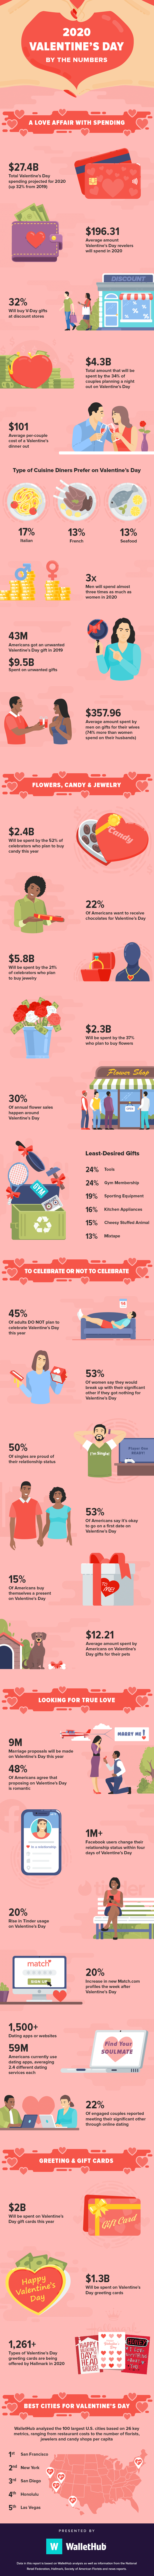 2020 Valentine's Day Ecommerce and Shopping Statistics